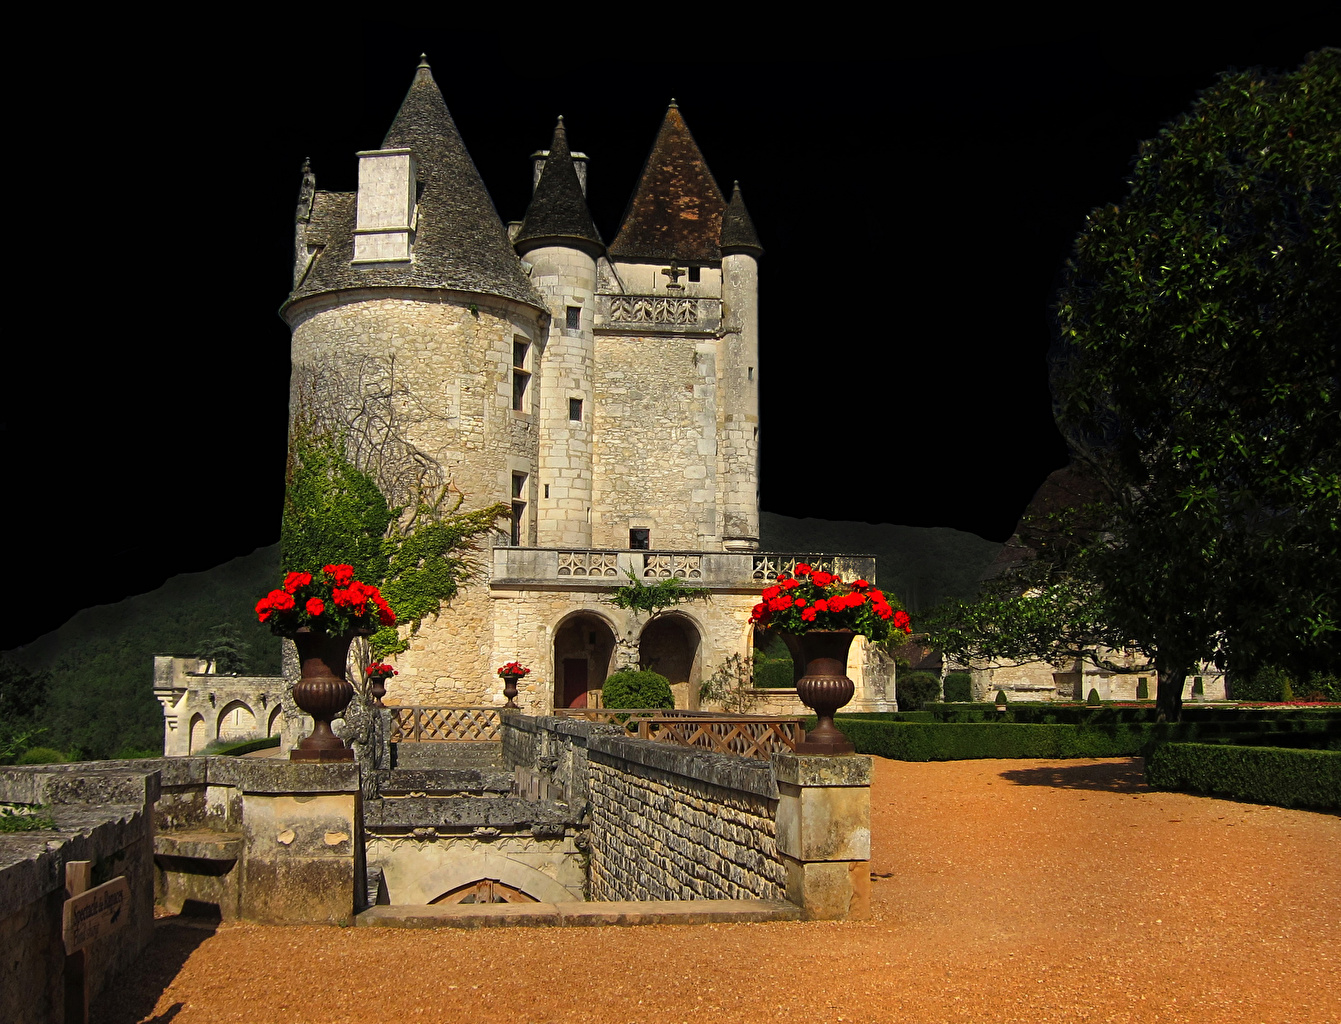 Picture France Chateau des Milandes Castles Night Bush Cities castle night time Shrubs